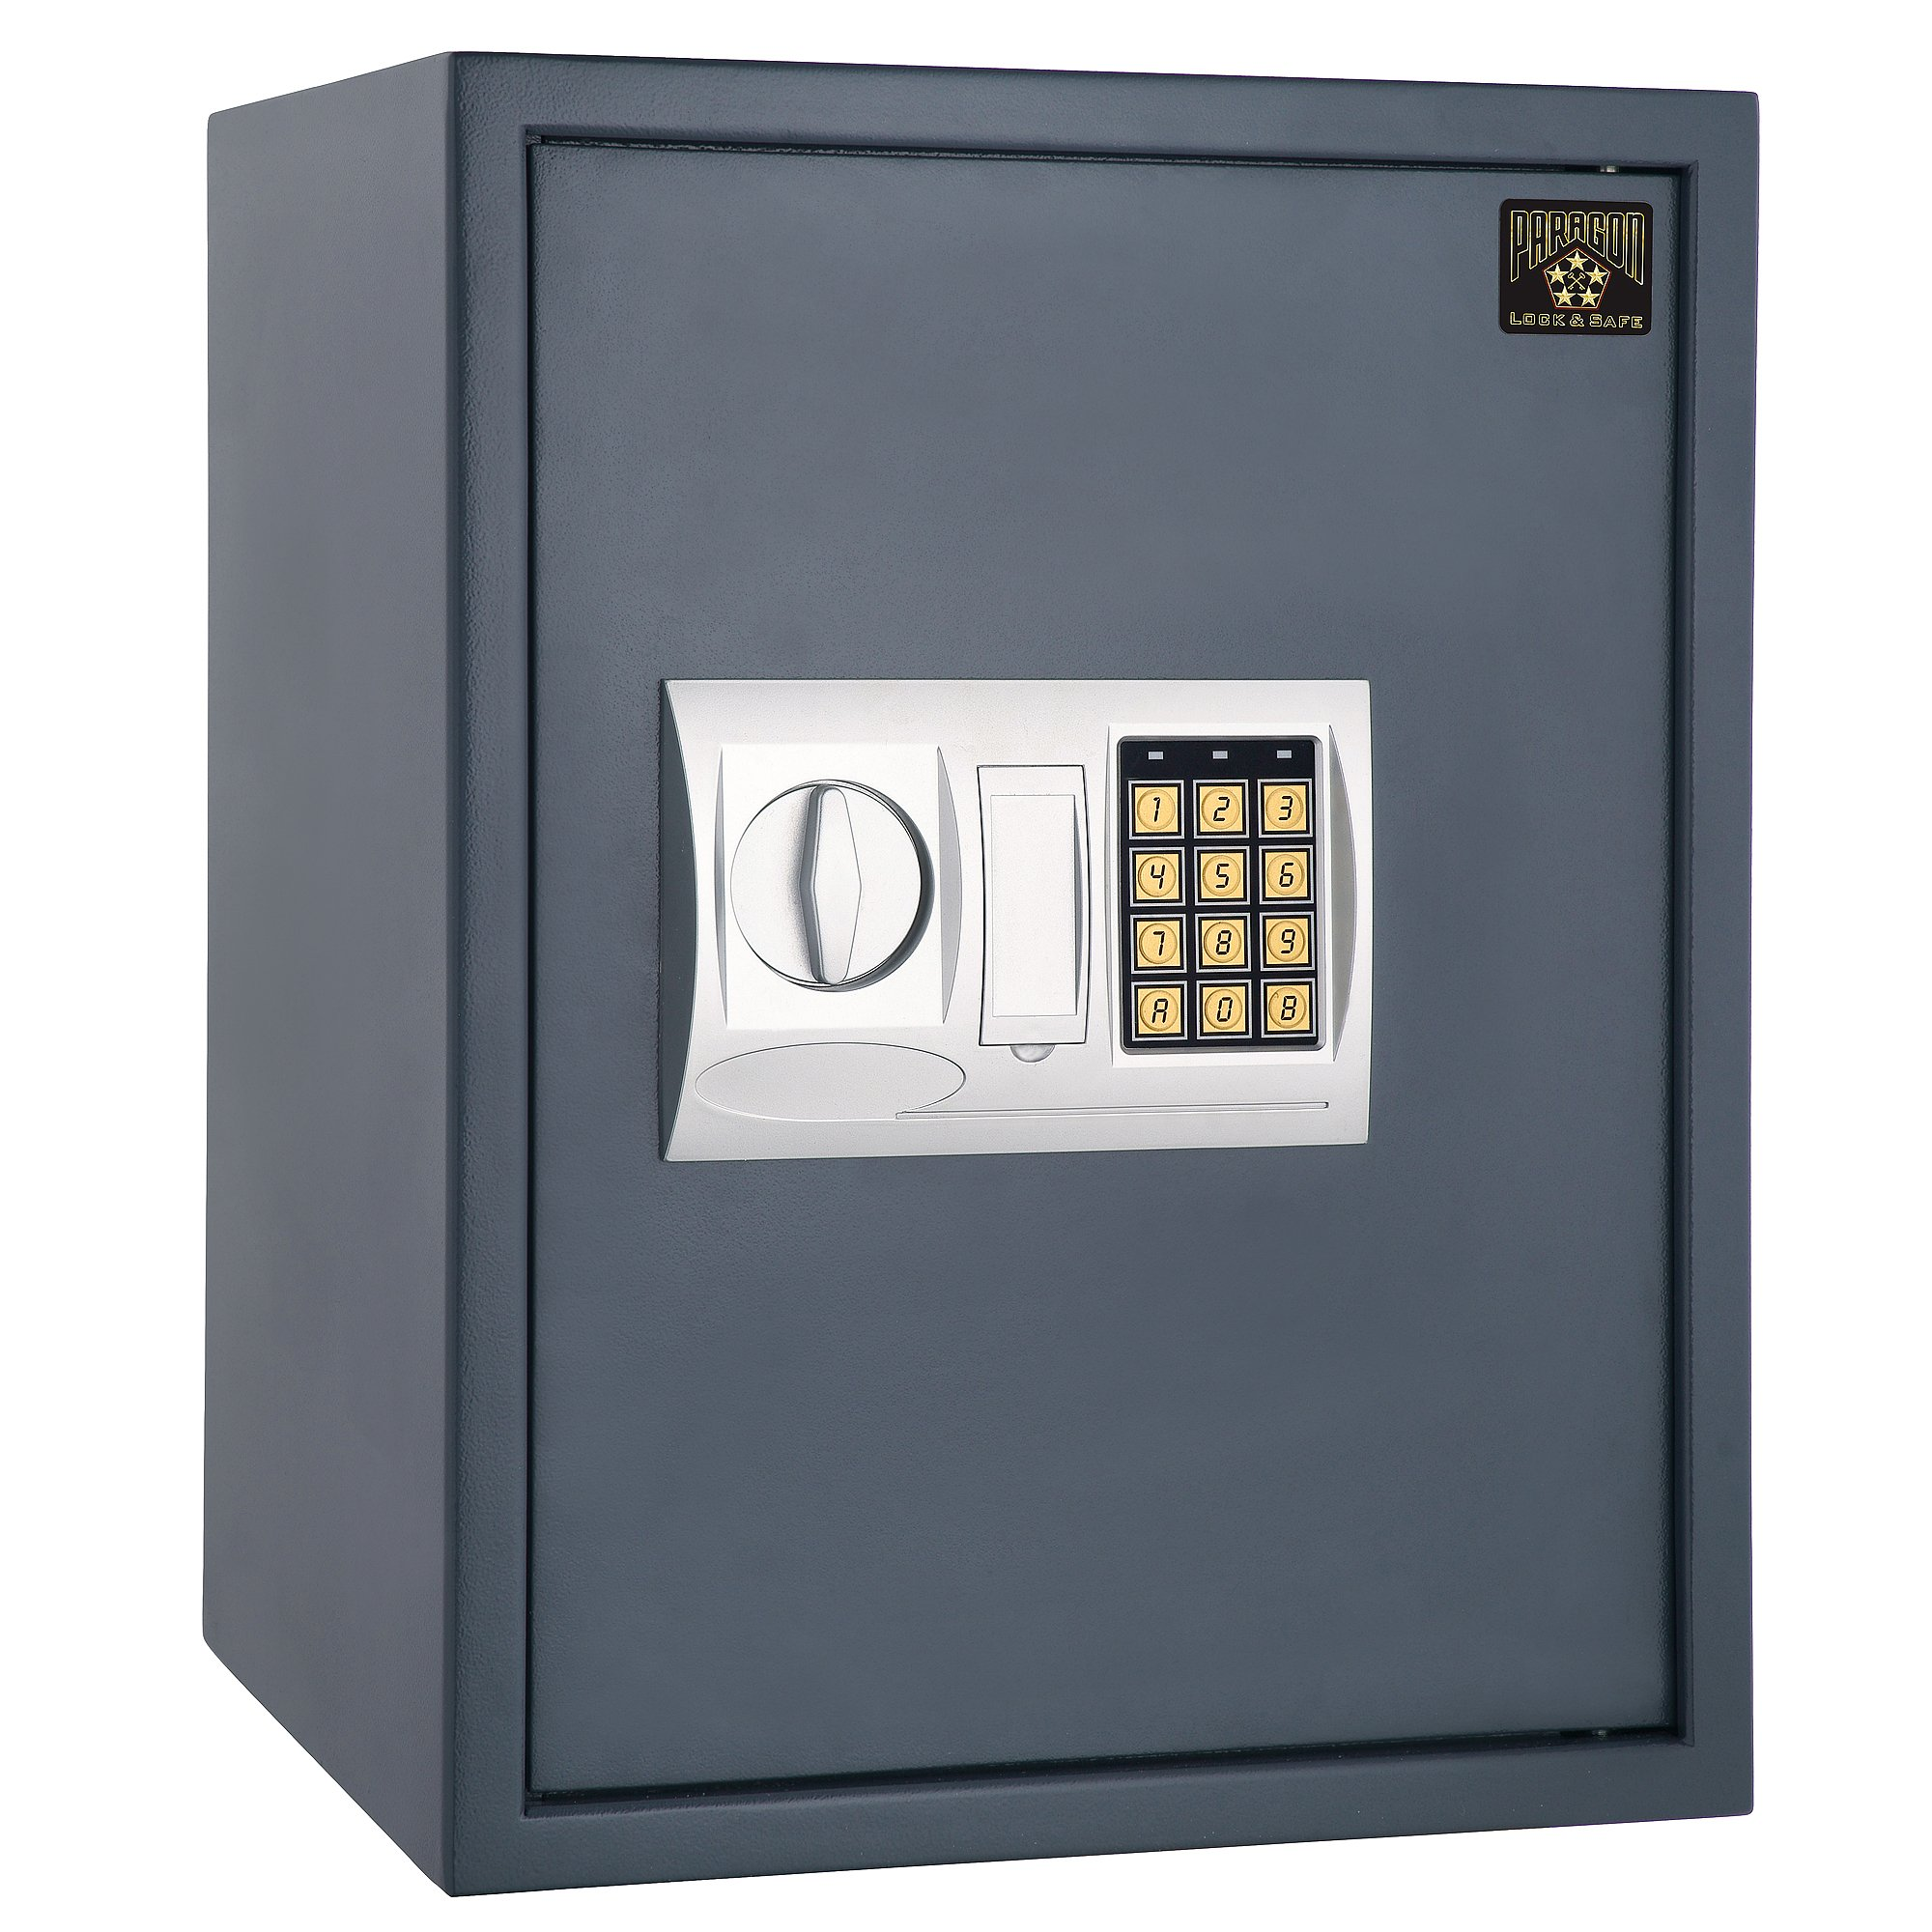 7805 Paragon Lock & Safe ParaGuard Premiere Electronic Digital Safe Home Security by Paragon Lock and Safe